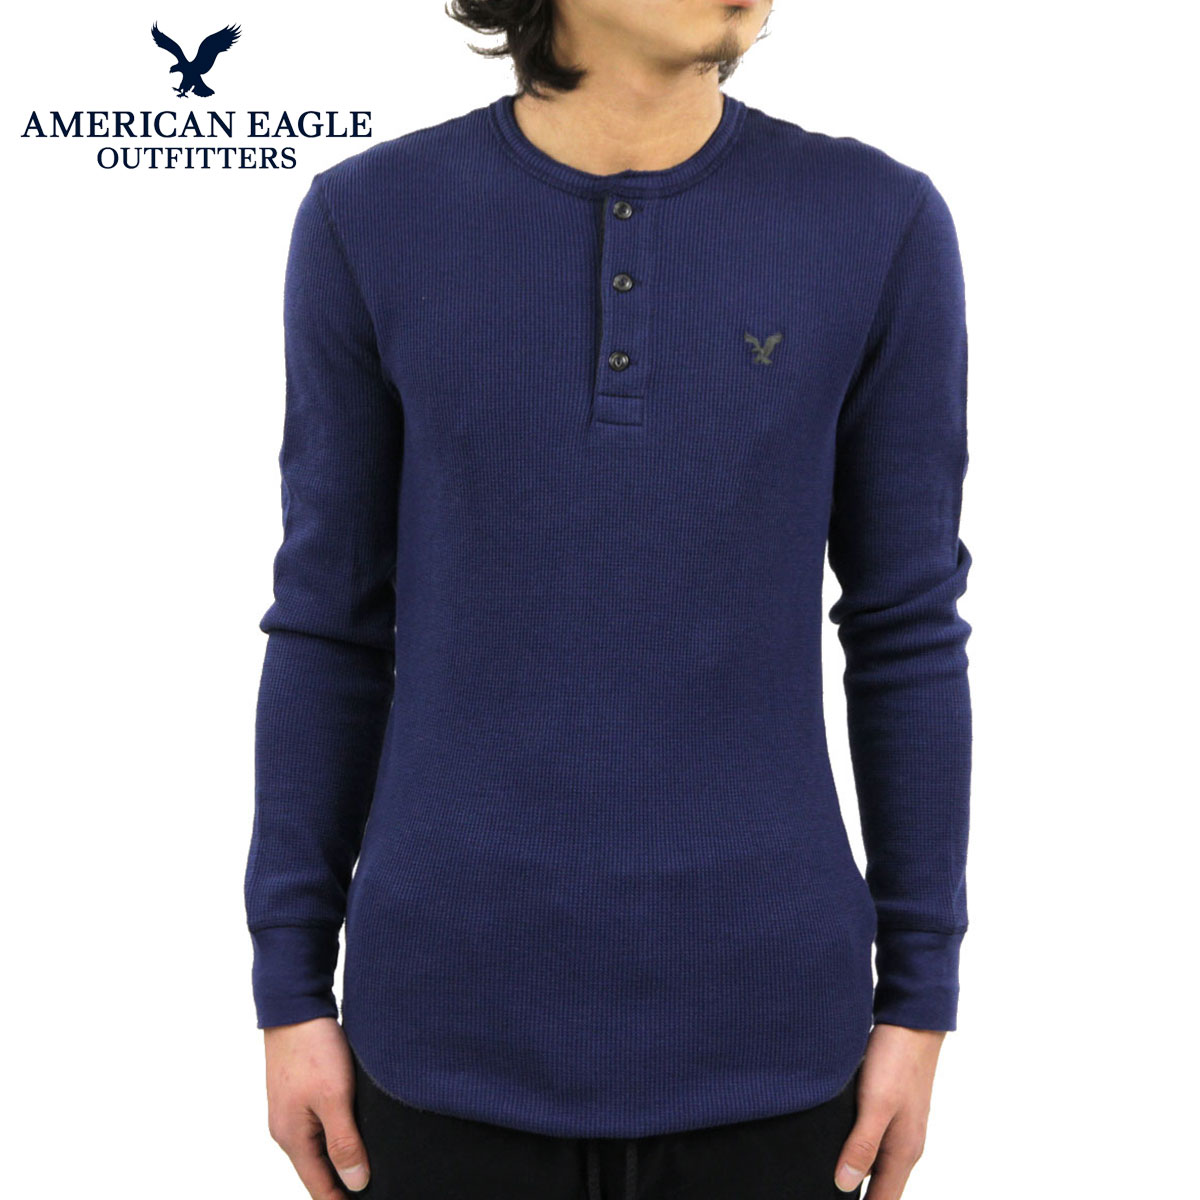 884b2b87 Eagle AMERICAN EAGLE AE men's Henry neck long sleeve T shirt AEO Thermal  Henley 1519-6122